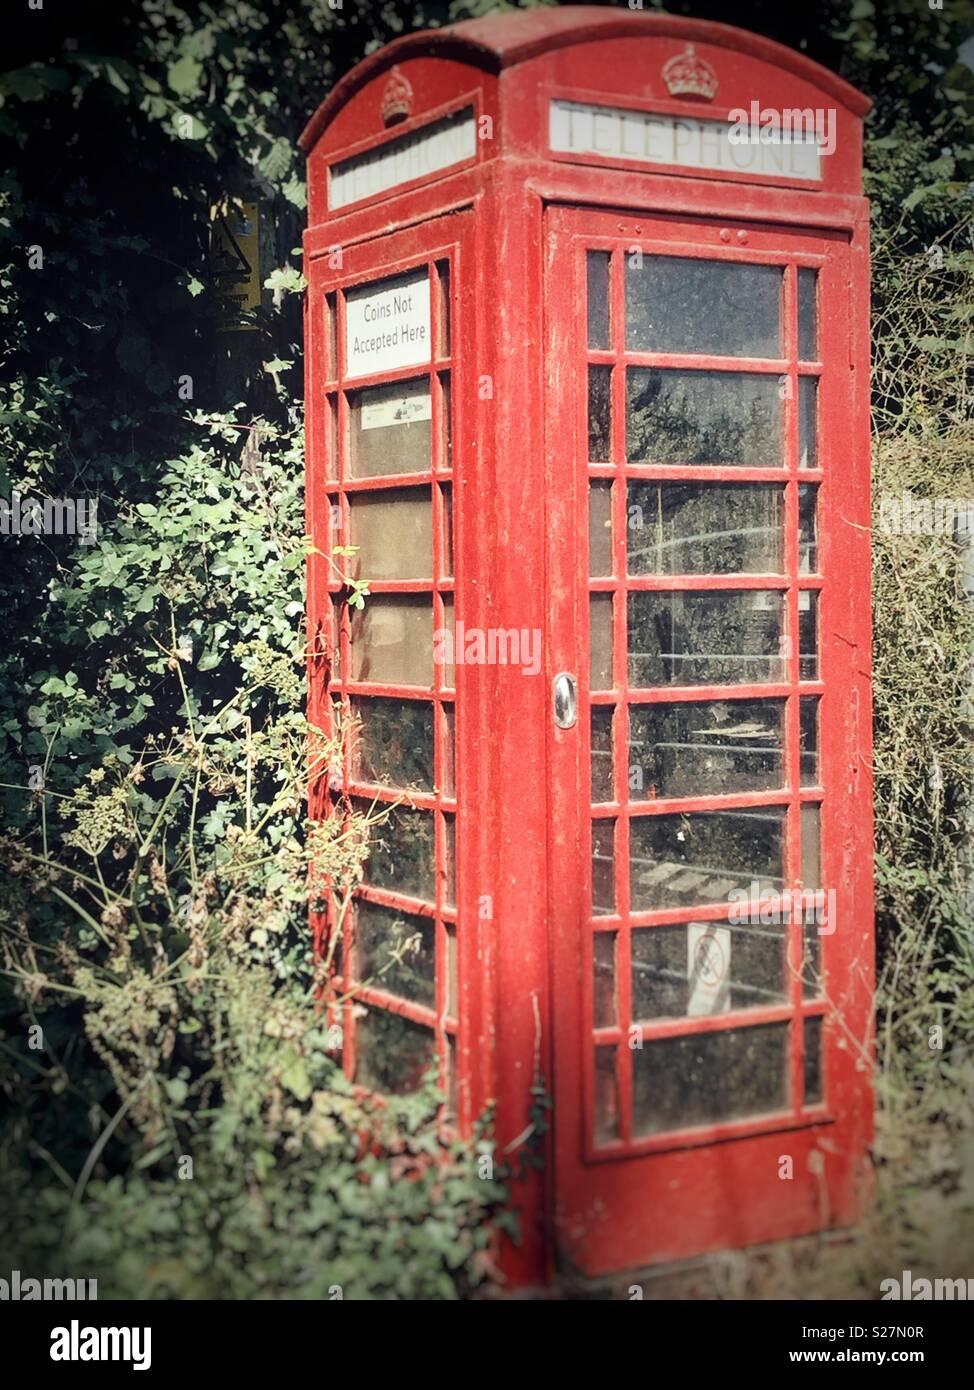 Old Red telephone box being claimed back by nature - Stock Image